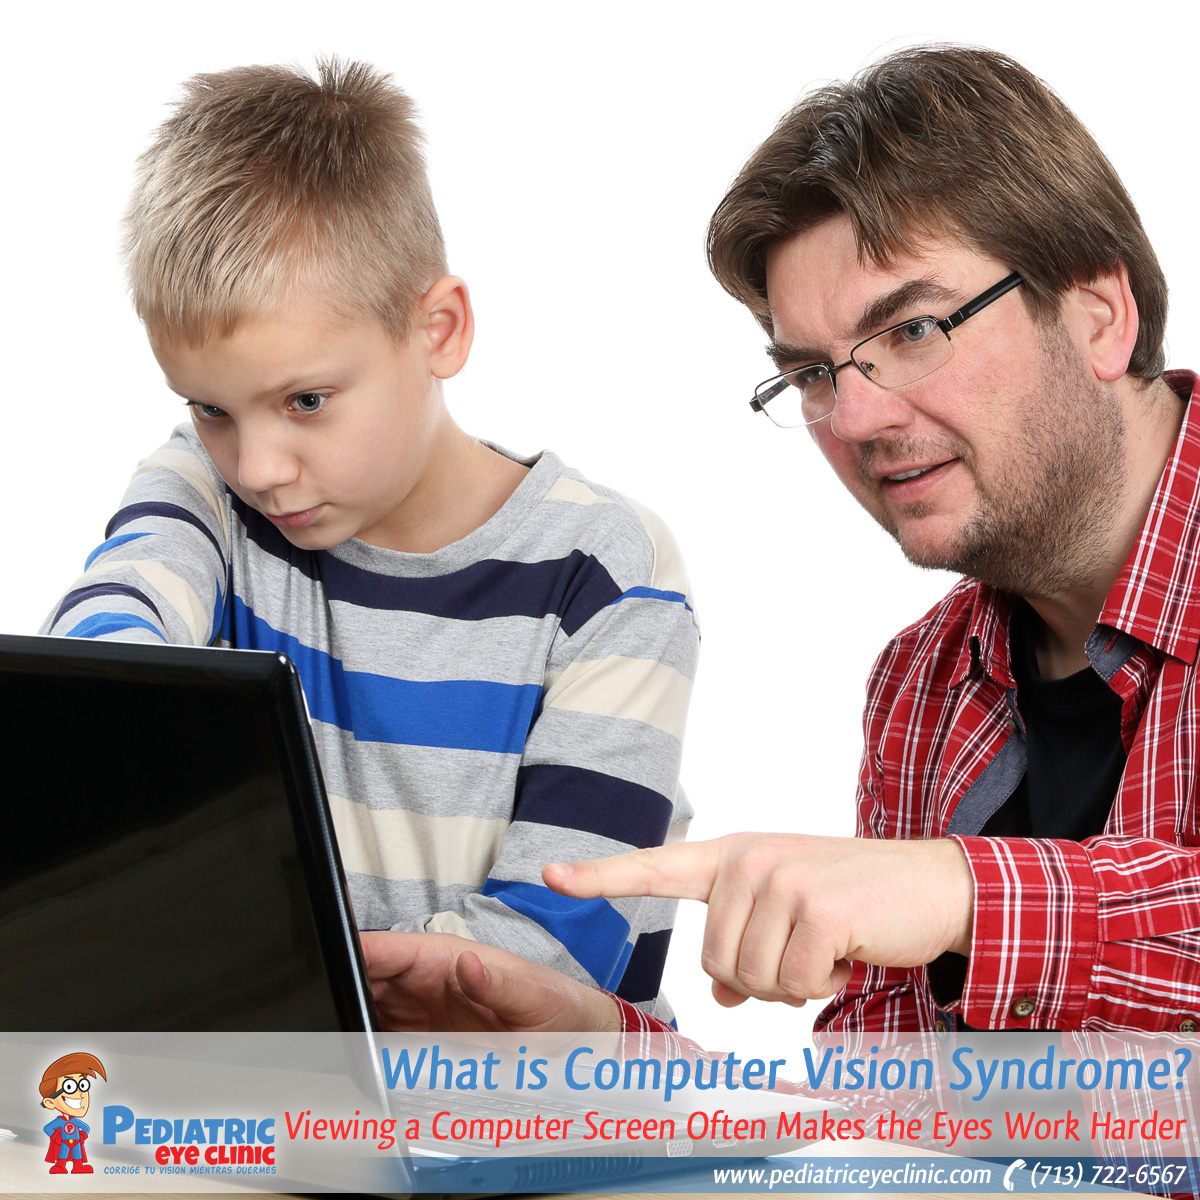 15-what-is-computer-vision-syndrome